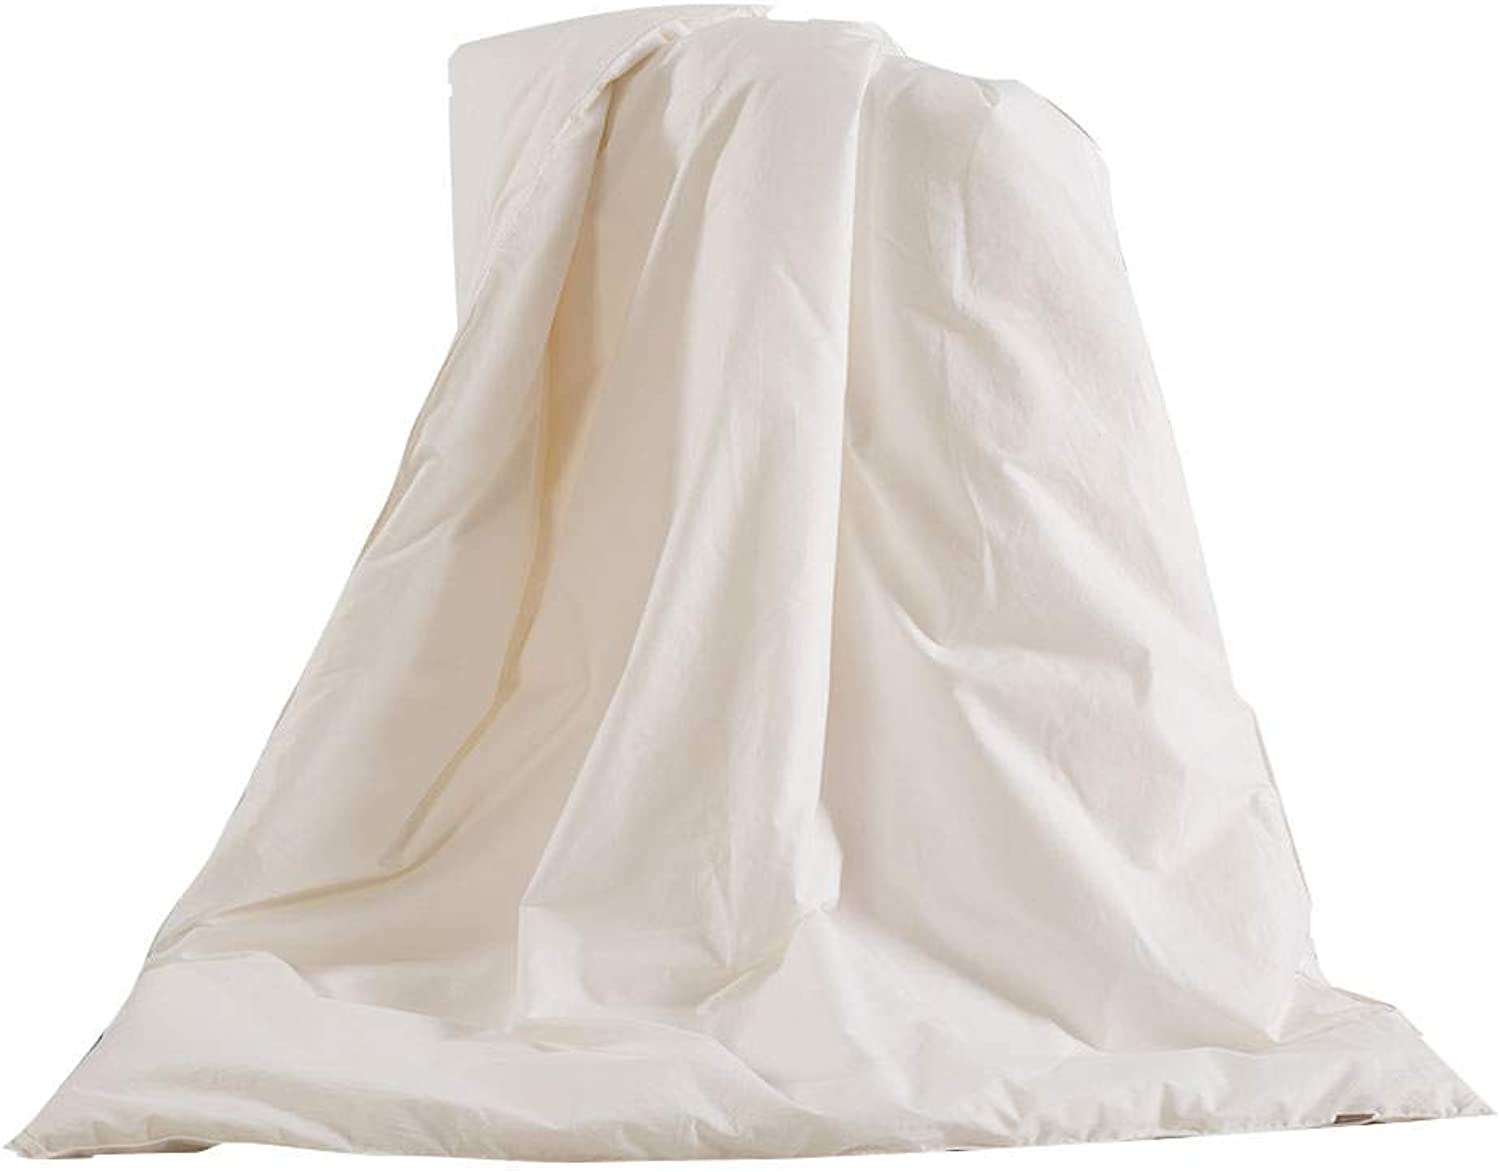 THXSILK 100% Mulberry Silk Duvet Comforter in White Cotton Shell for Baby Crib Toddler Bed for Spring and Fall, White